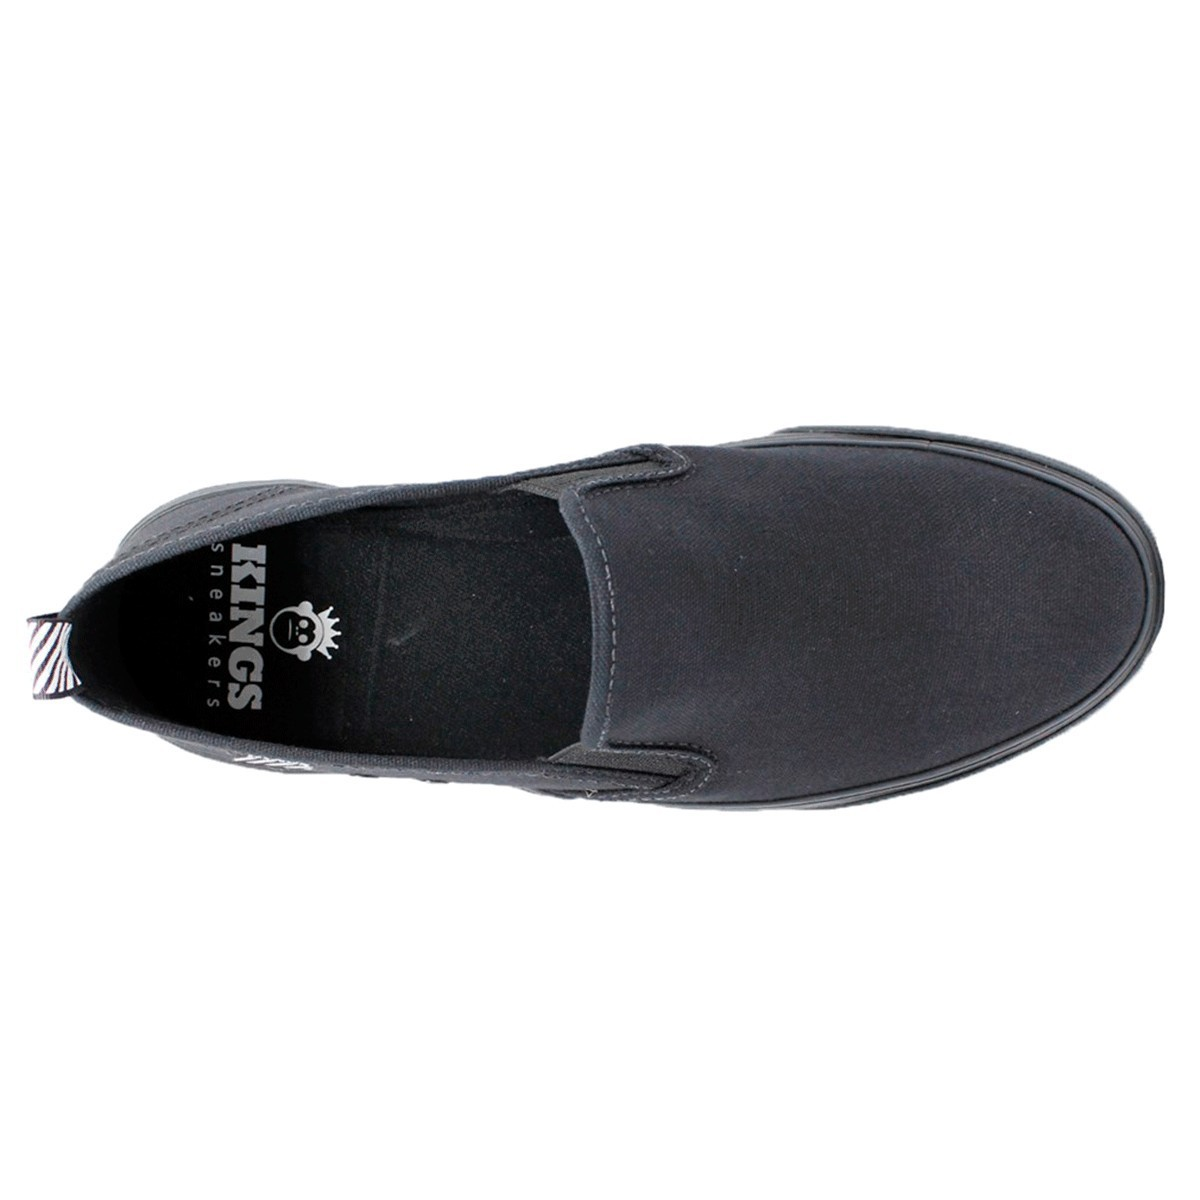 Tênis Slip On Kings Lona Esportiva 3007 - Preto